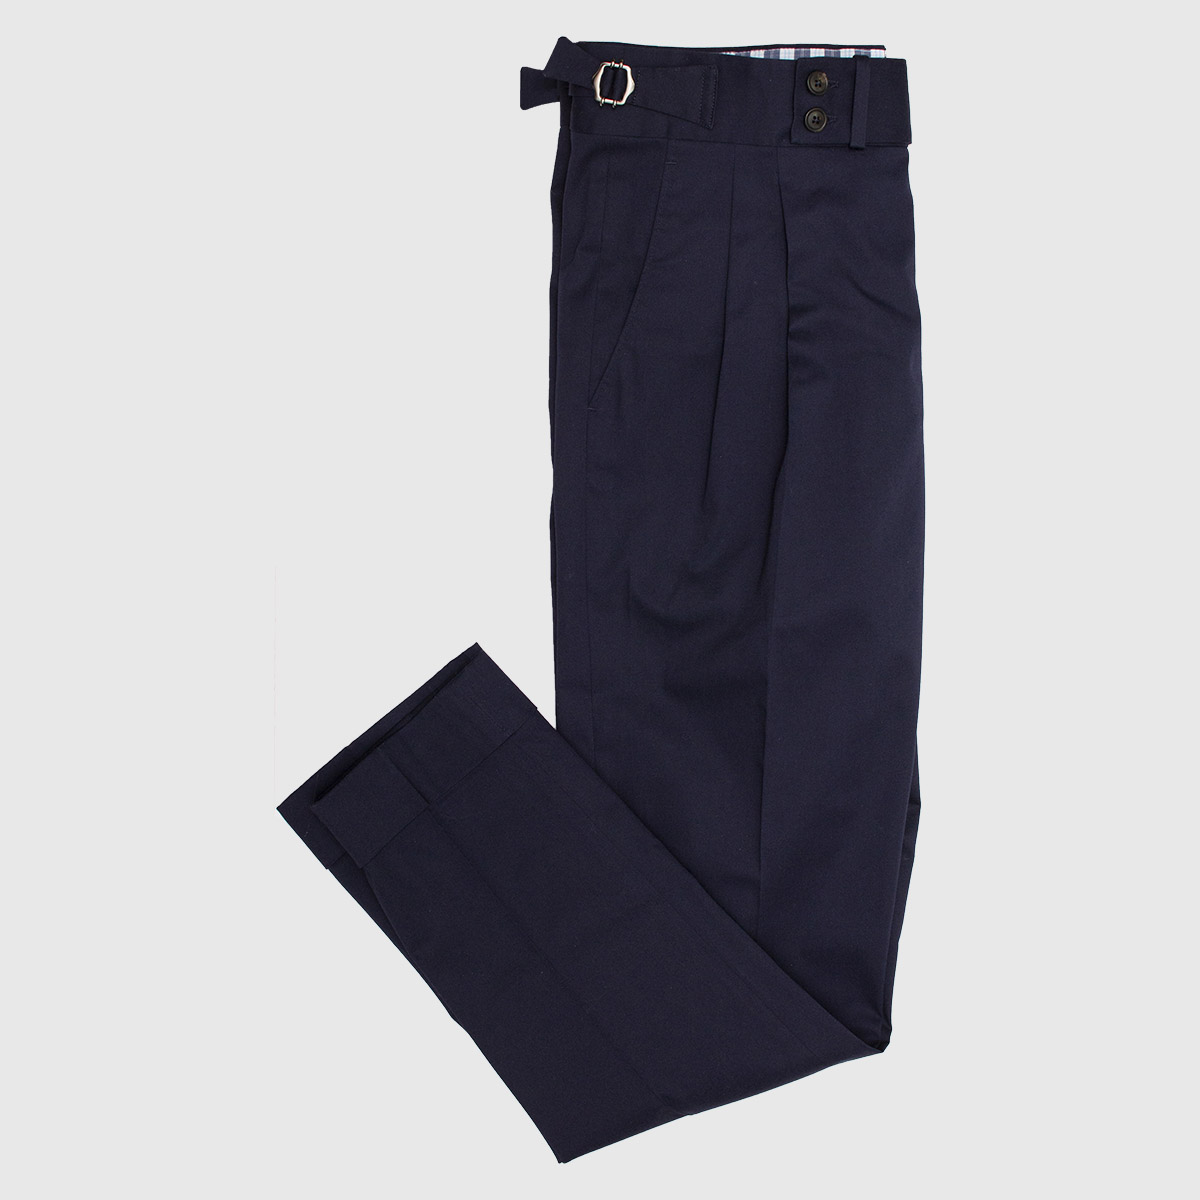 Two piences Blue Cotton Trousers